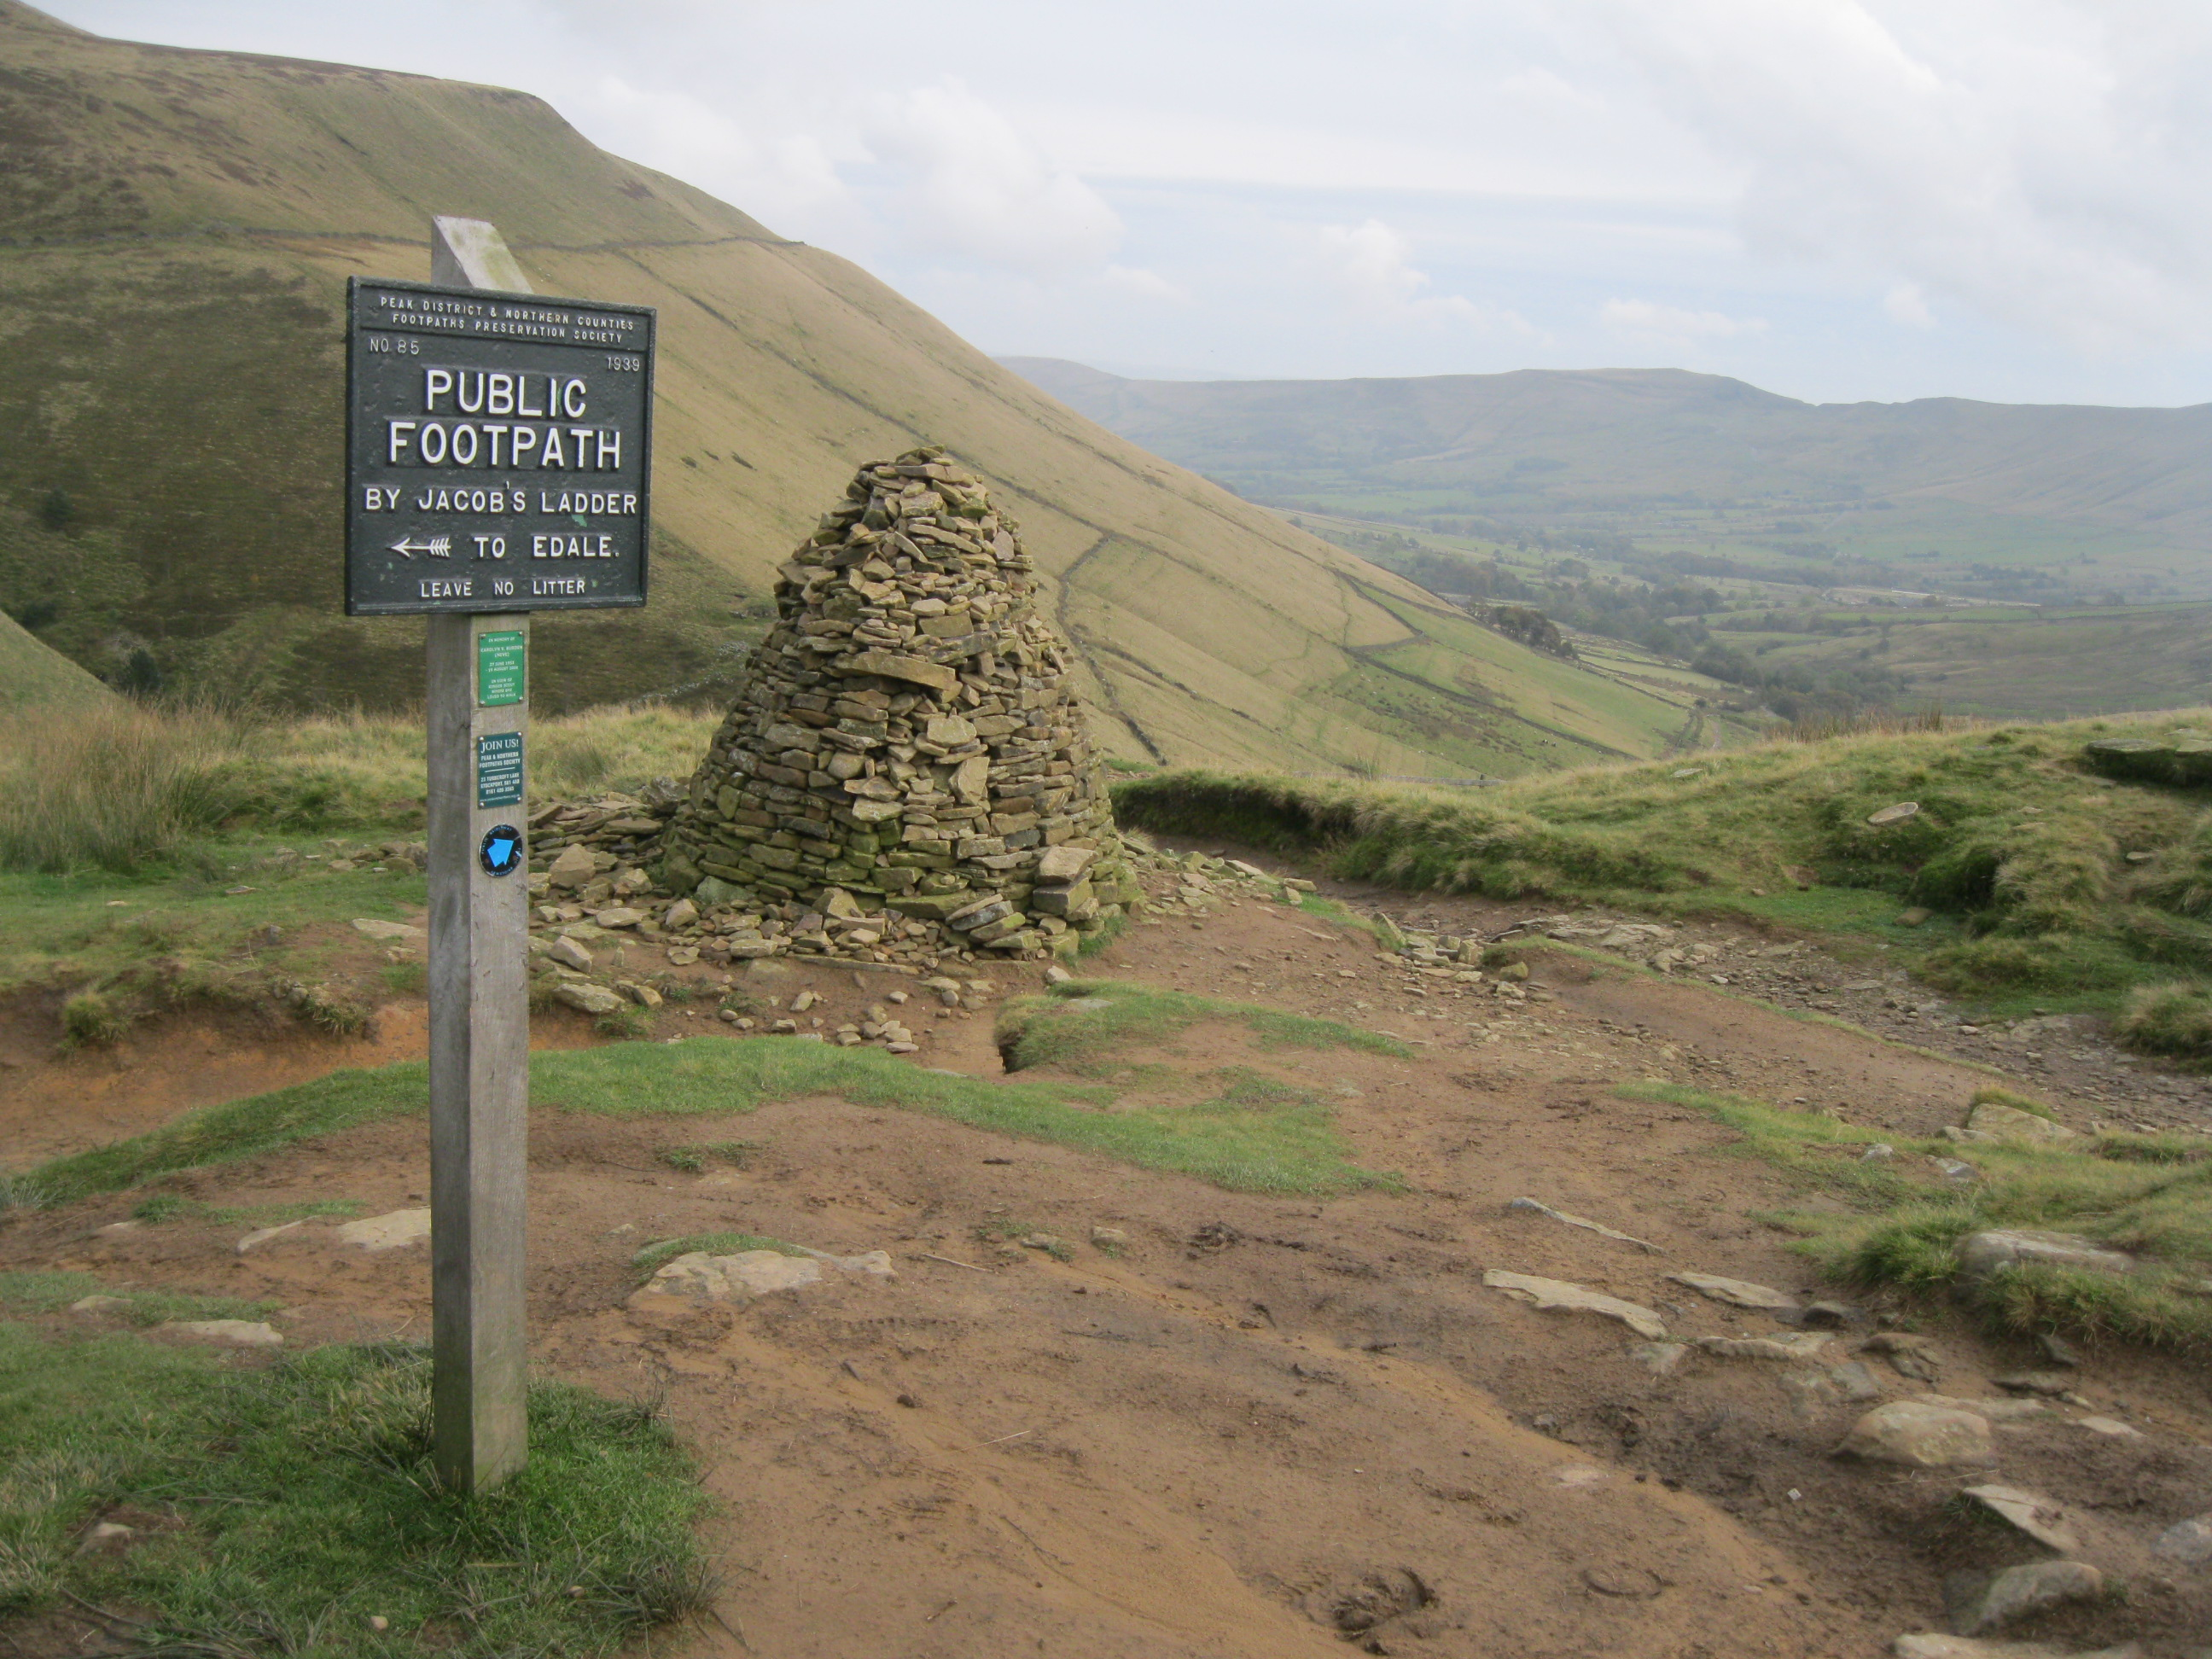 File:Pennine Way, Edale from Kinder Scout, Peak District, Derbyshire  (8120126842).jpg - Wikimedia Commons